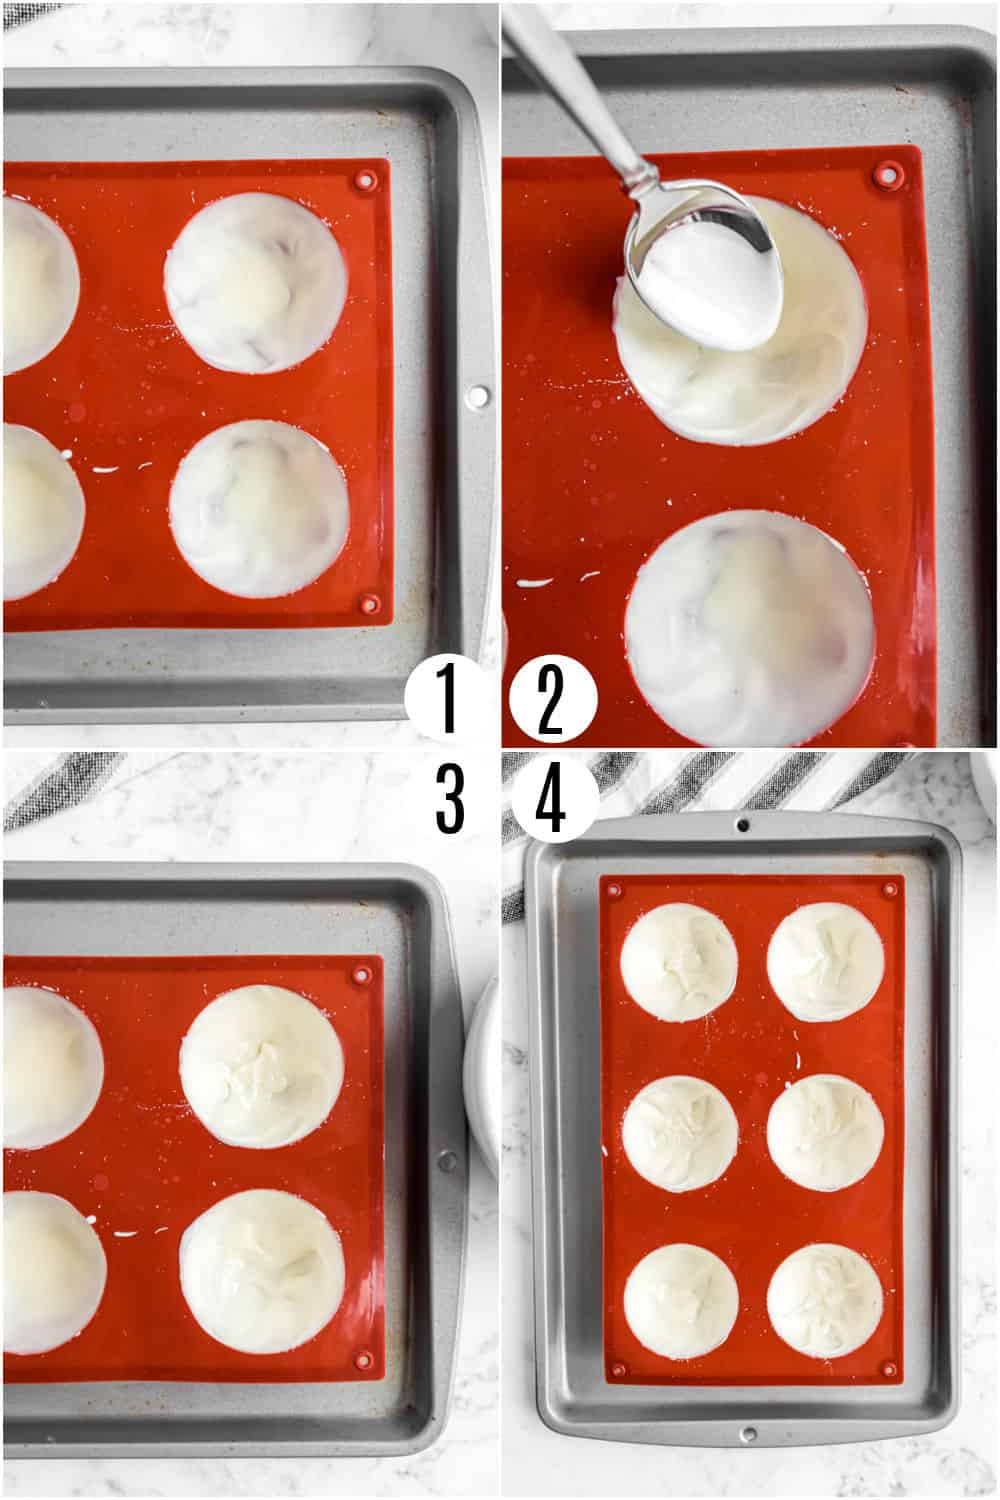 Step by step photos showing how to add melted white chocolate to hot cocoa mold.